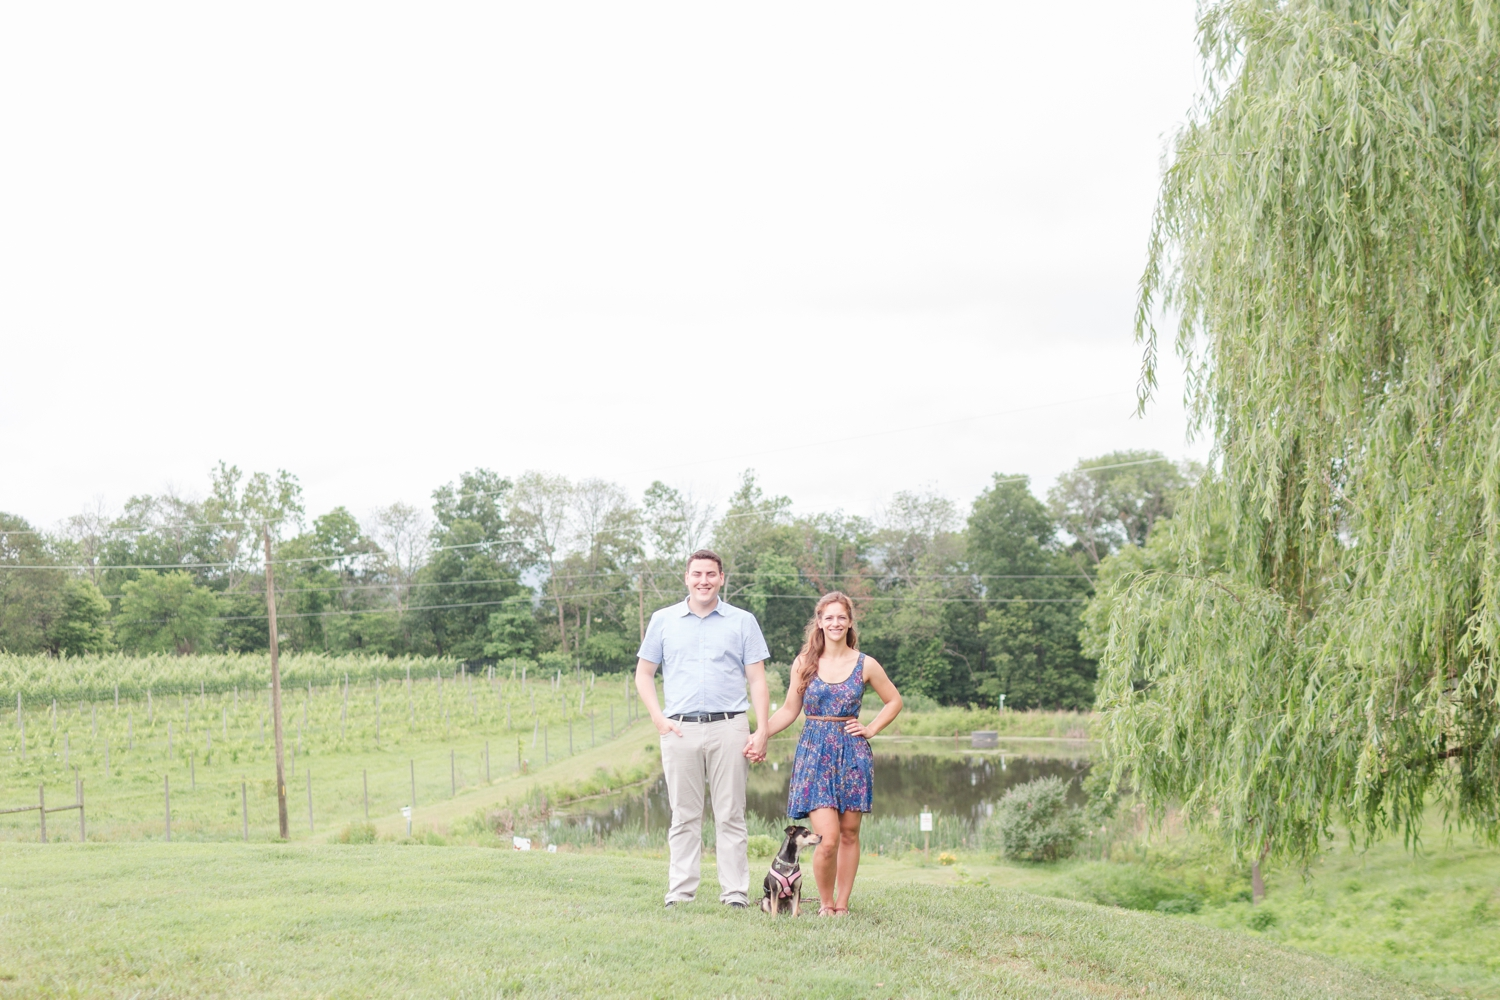 Colin & Kelsey Engagement-156_anna grace photography sunset hills vineyard engagement photography virginia wedding and engagement photographer photo.jpg